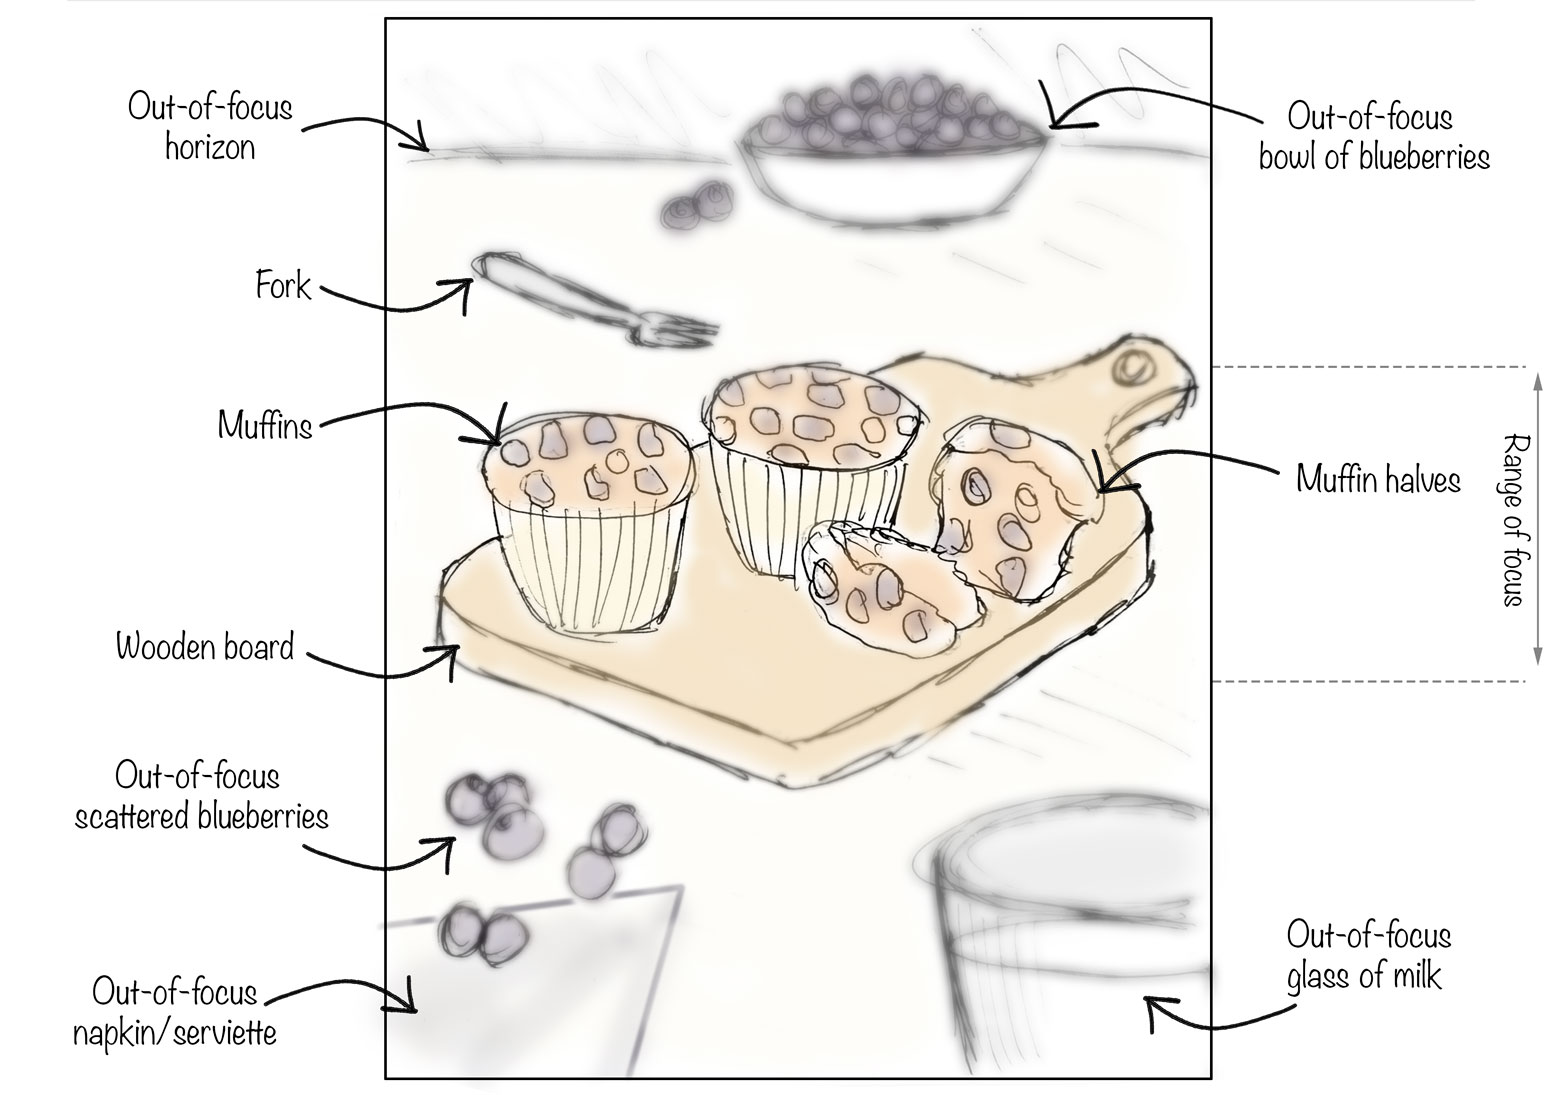 Sketch of muffins for photography brief